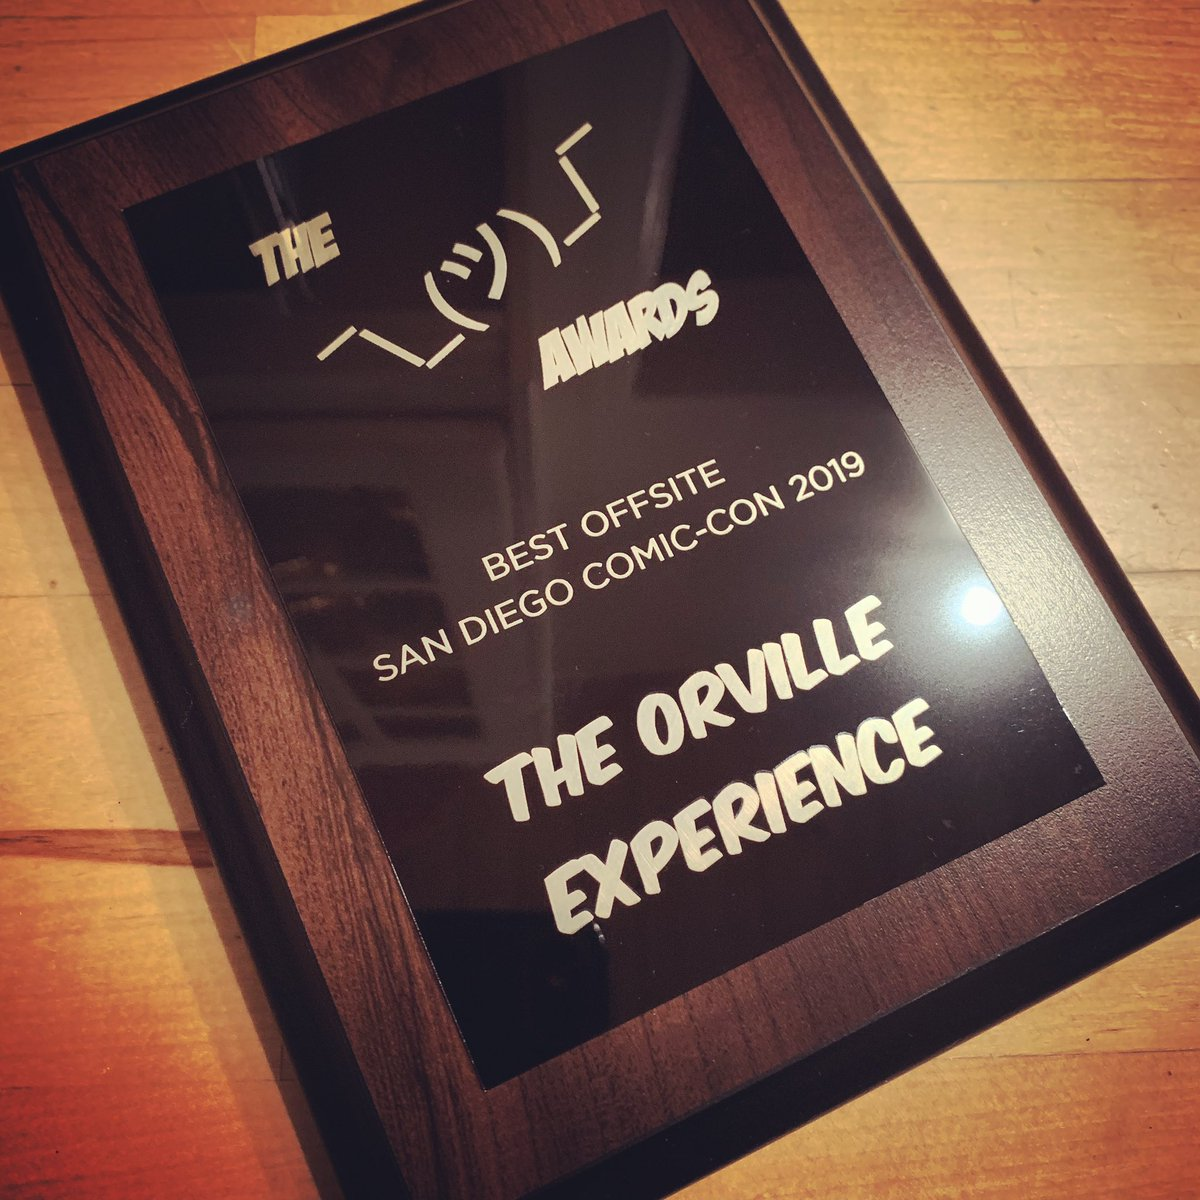 Thanks to @SD_Comic_Con, @OutsideComicCon and all who voted. Let's see what 2020 brings. @SethMacFarlane @TheOrville @planetary_union @Brooki_eh @stjerome610 @GDNaturedVLLN @theChristiA2 @MacKenzieRLC #TheOrville #theorvilleexperience #SDCC2019  <br>http://pic.twitter.com/oTHHr7h2QC – à Fox Studios